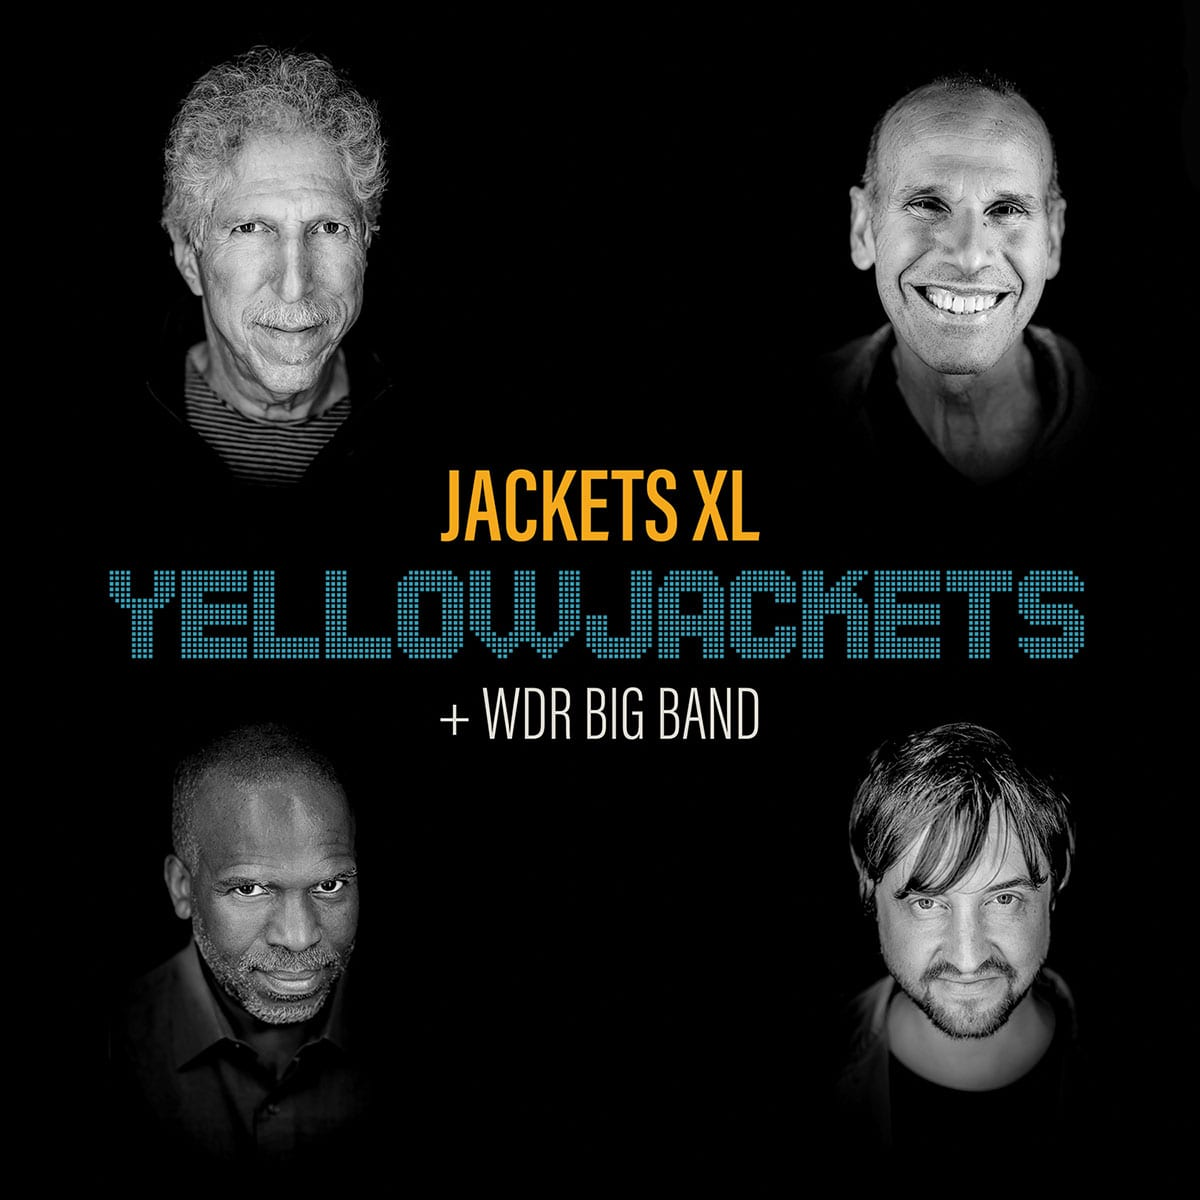 Yellowjackets WDR Big Band- Jackets XL